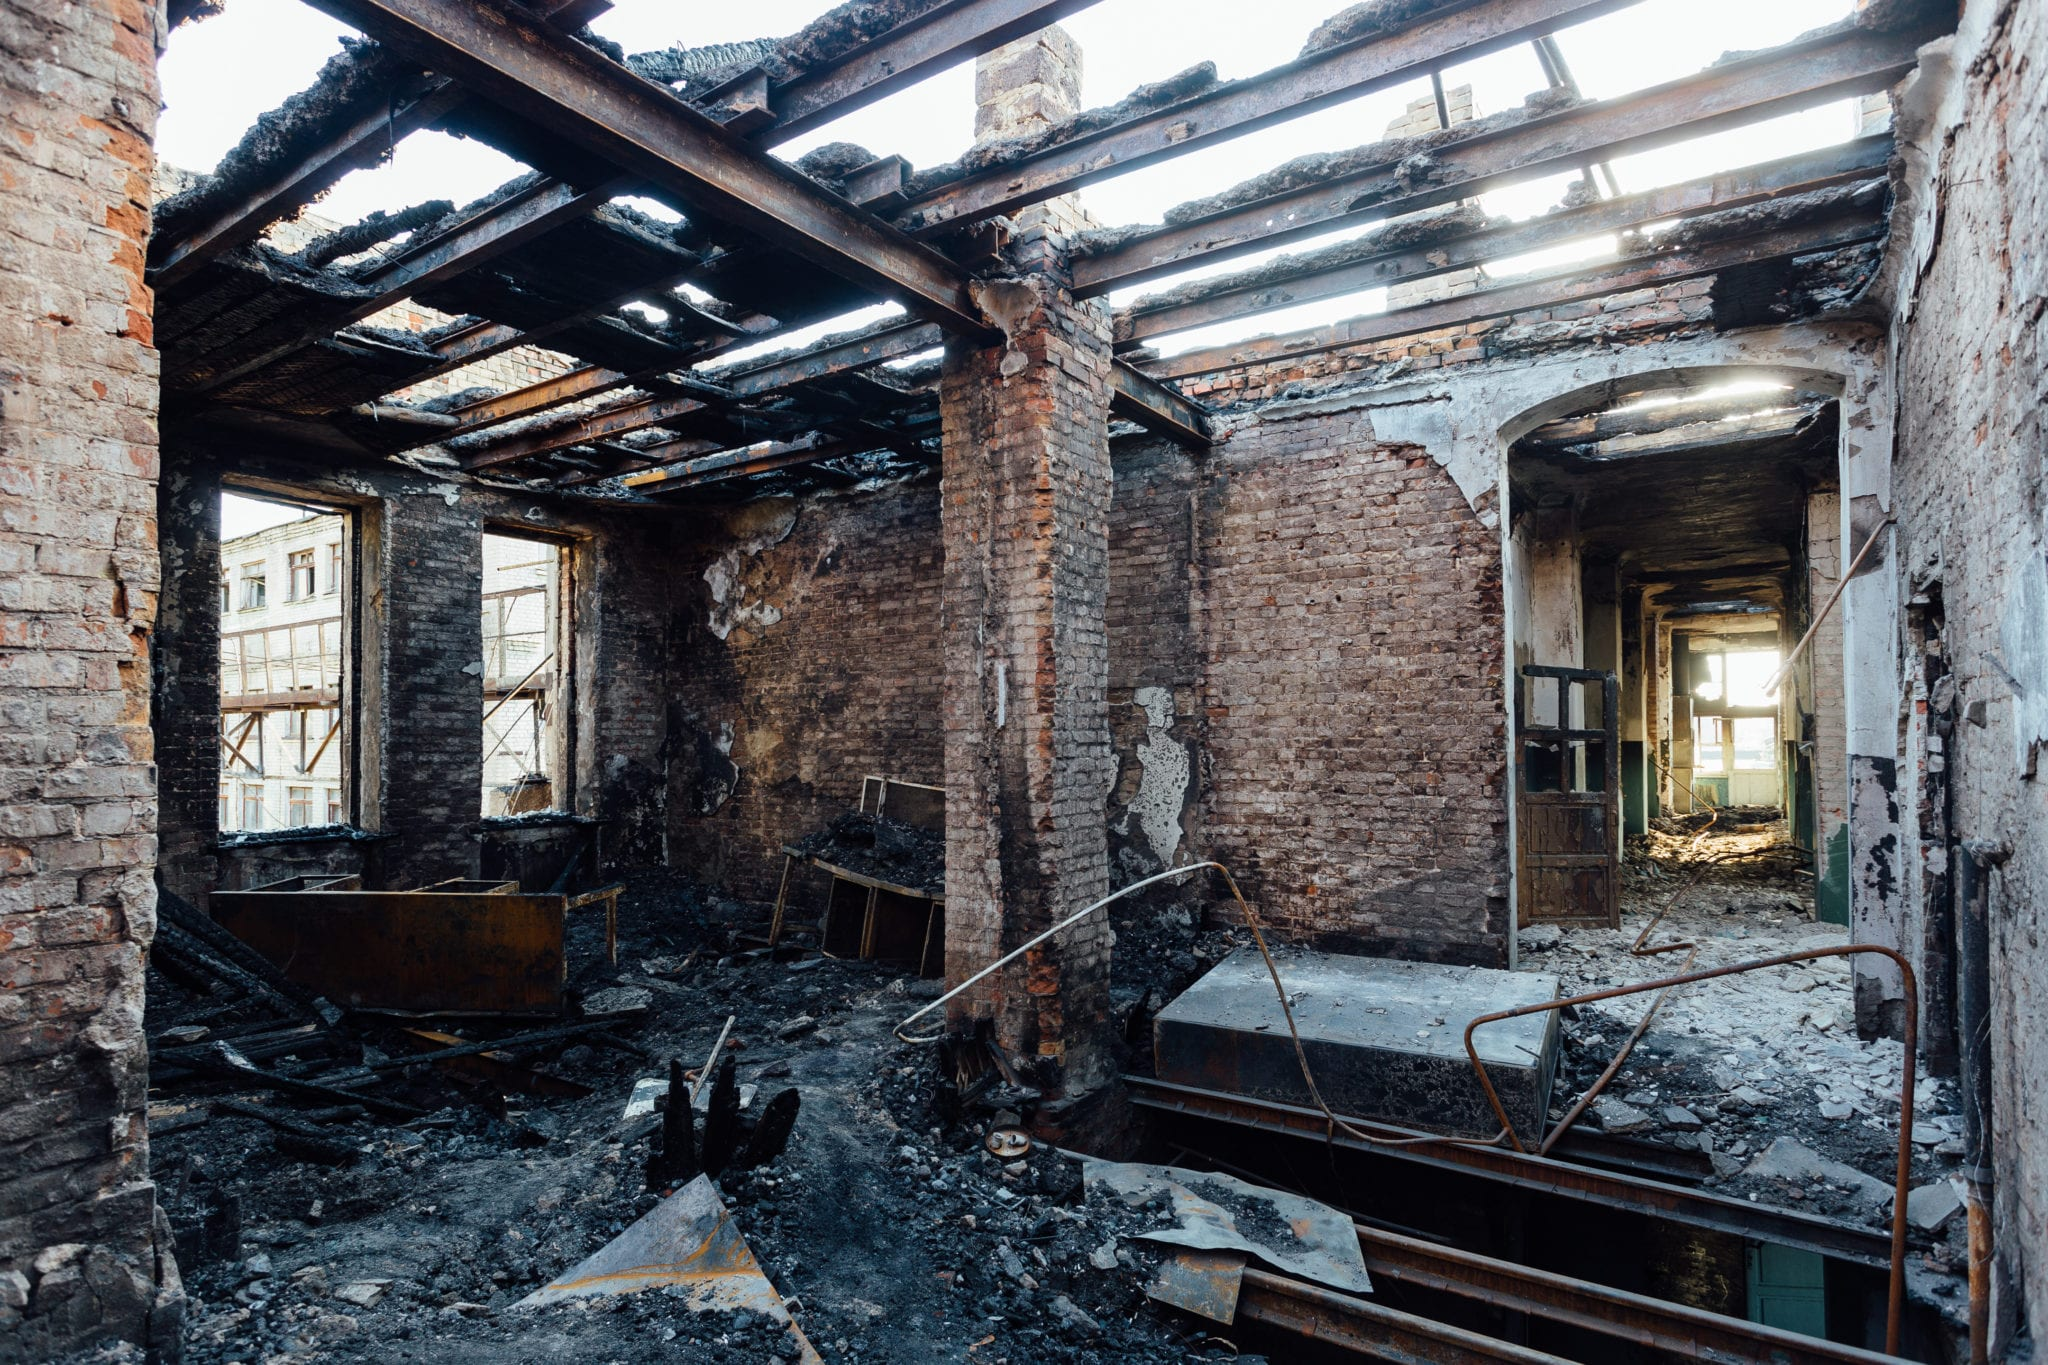 Burned interiors after fire in industrial or office building. Burnt furniture, failed roof